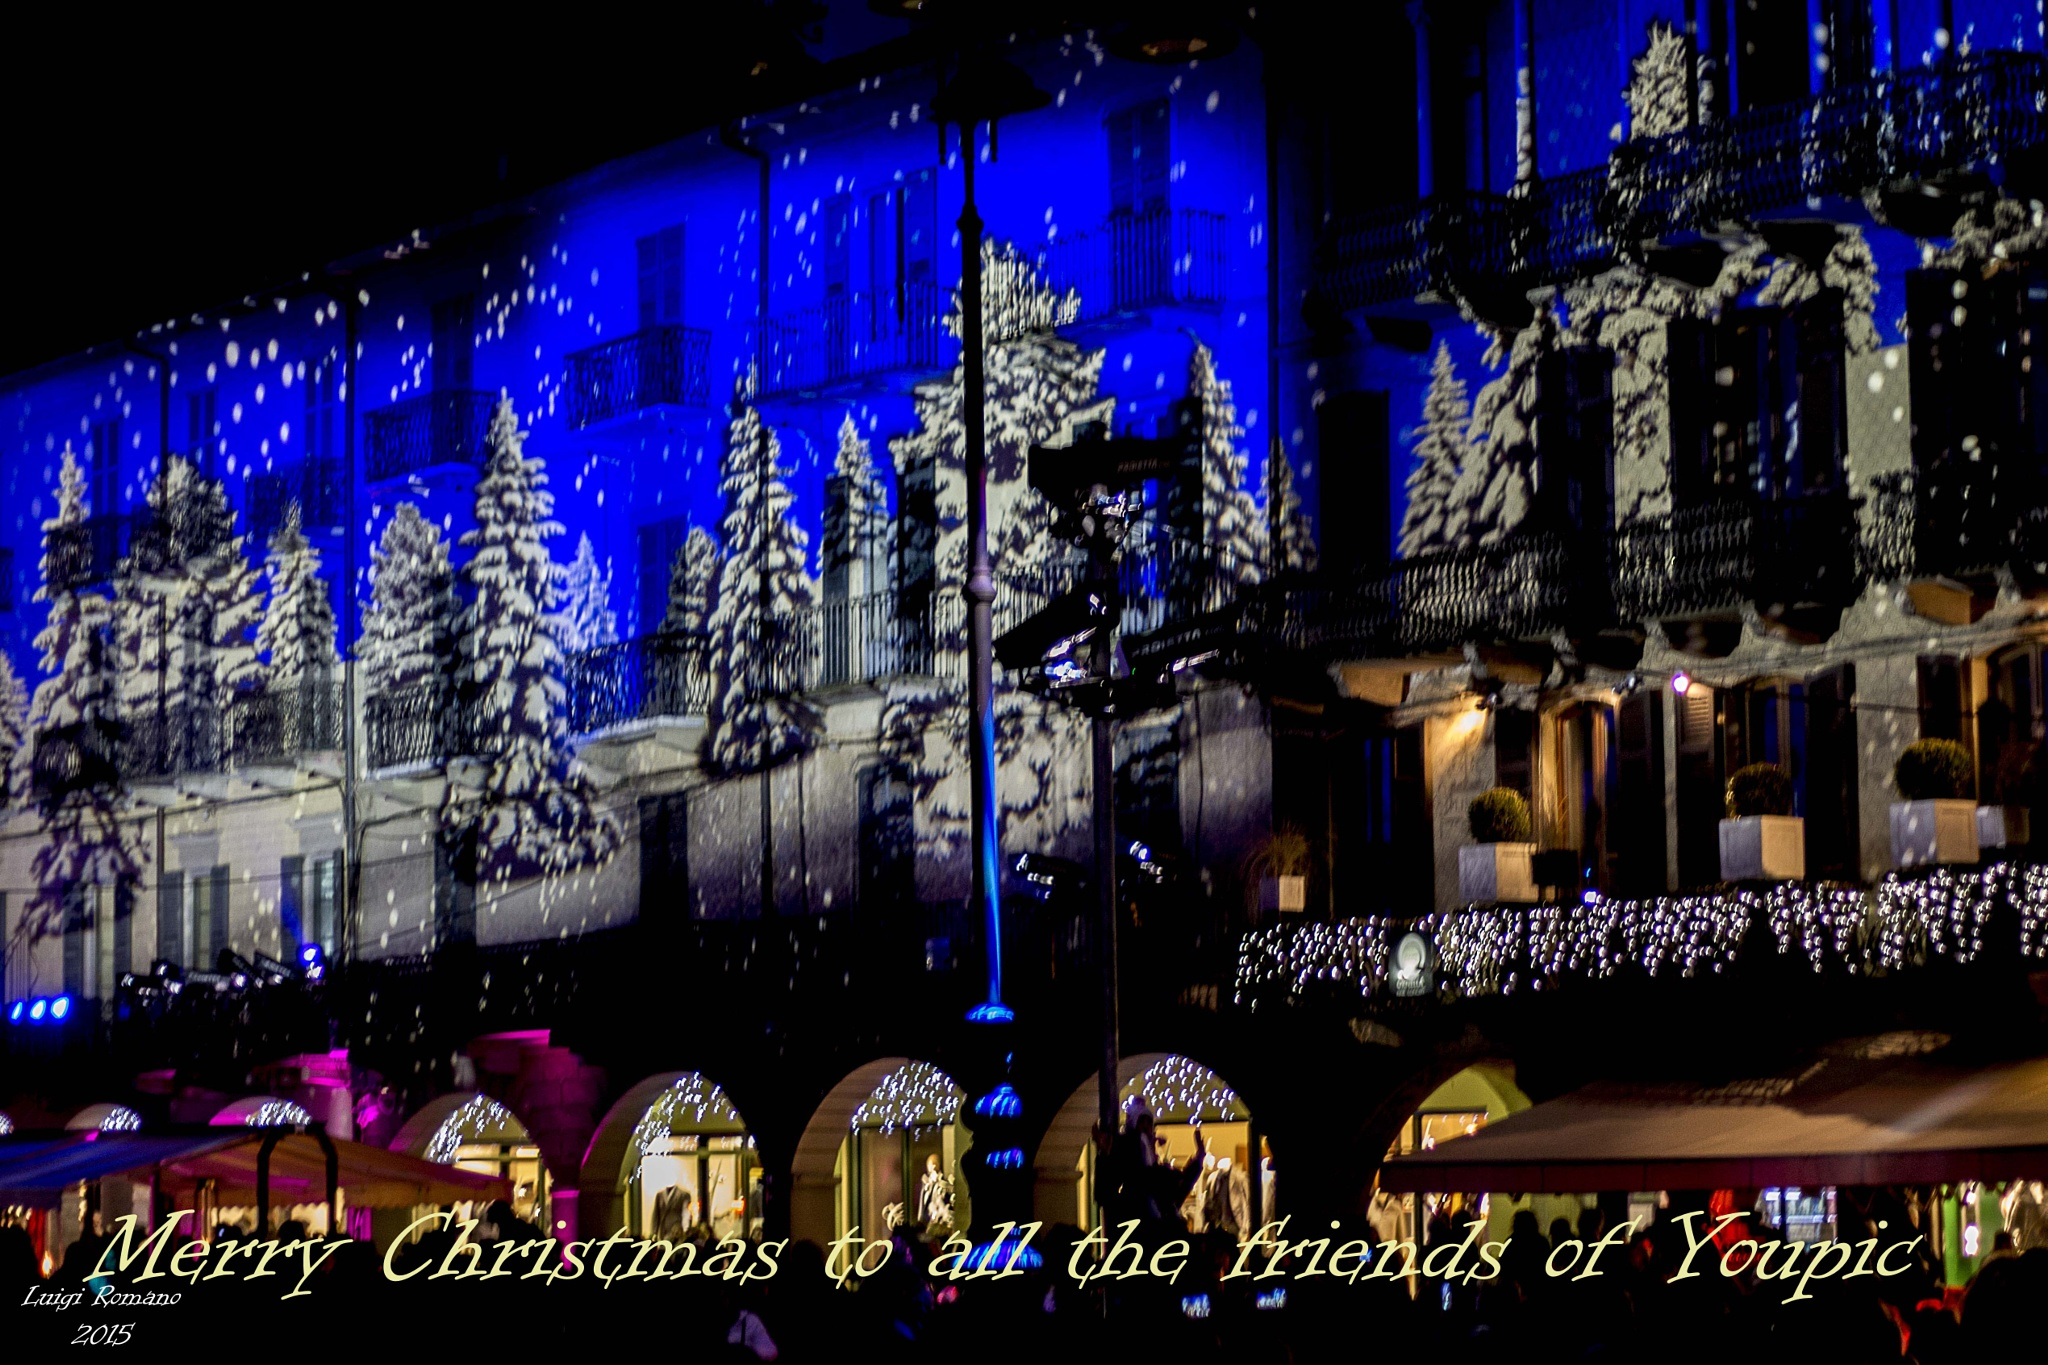 Merry Christmas to all the friends of Youpic by Luigi Romano